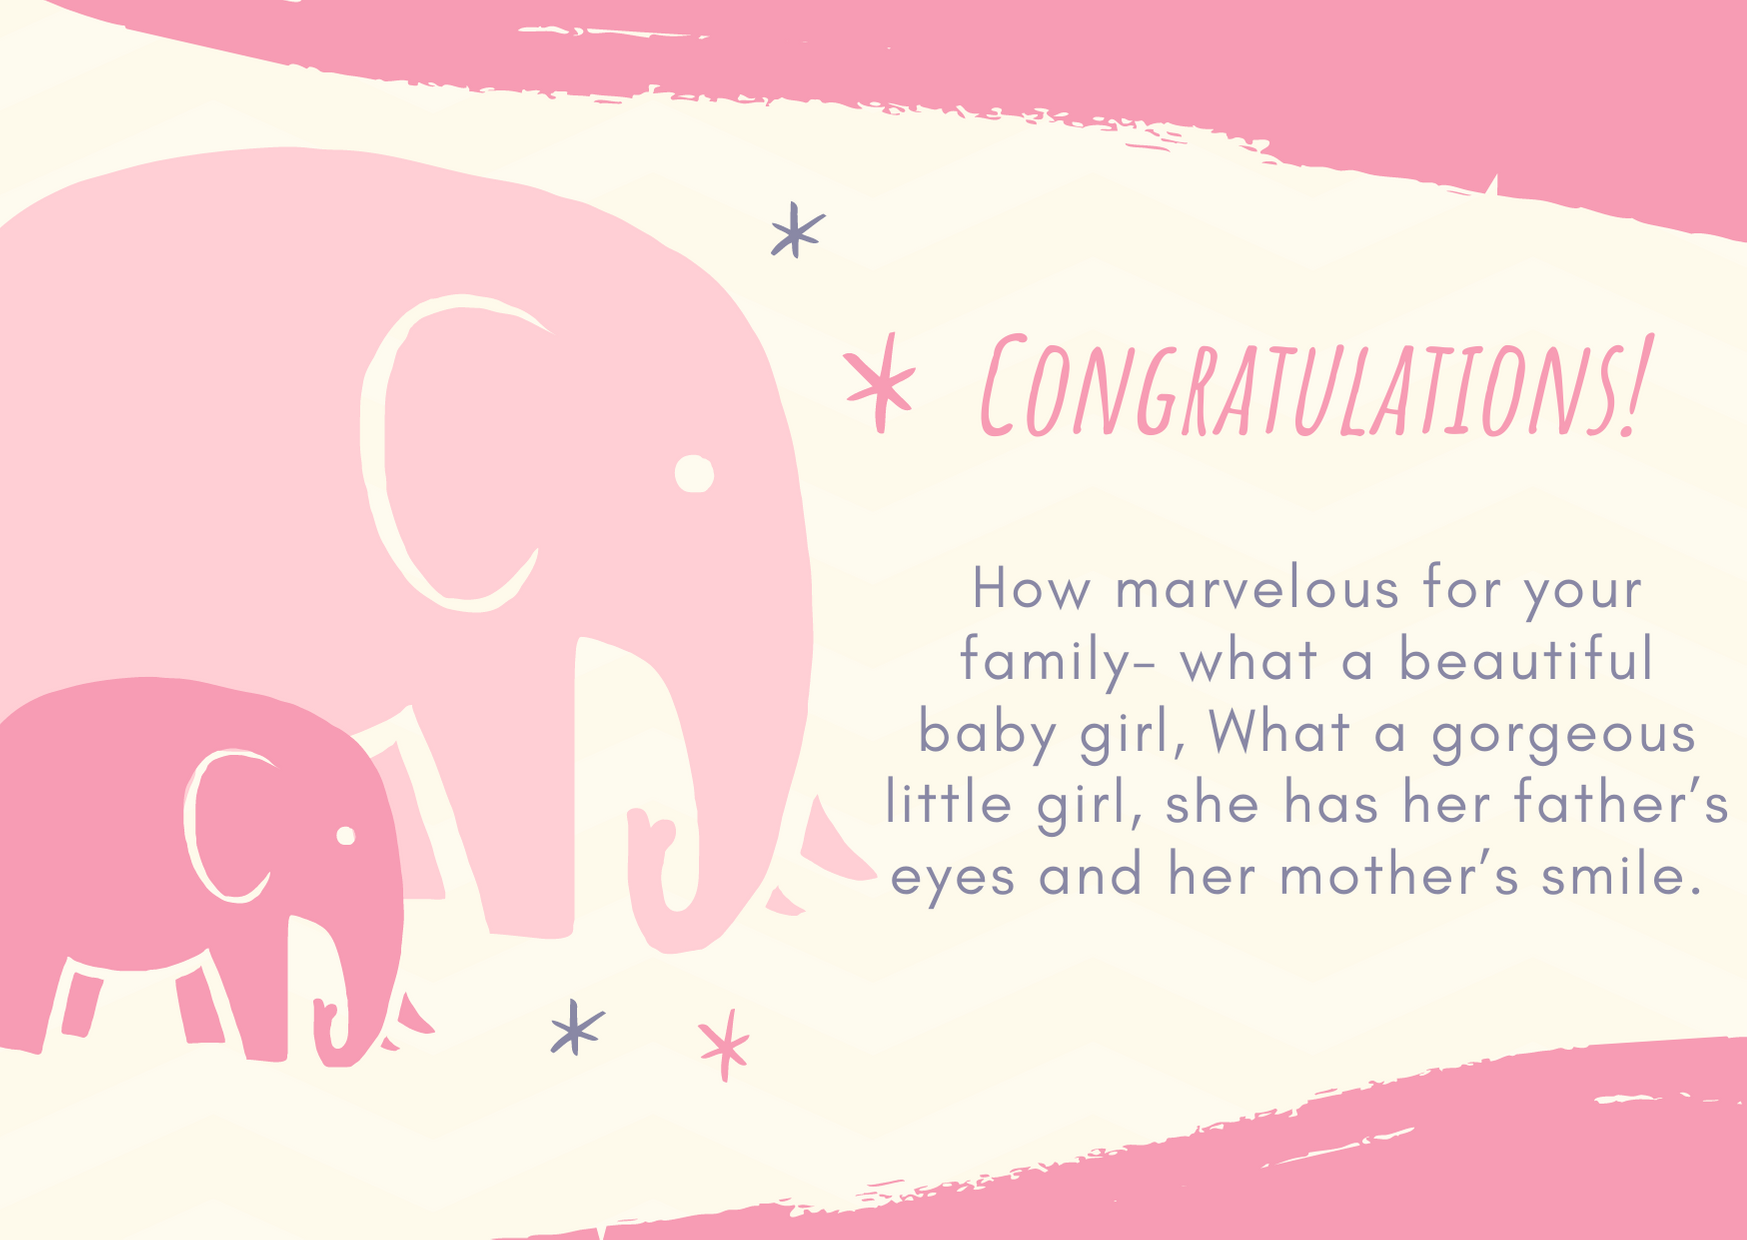 congratulations messages for baby girl